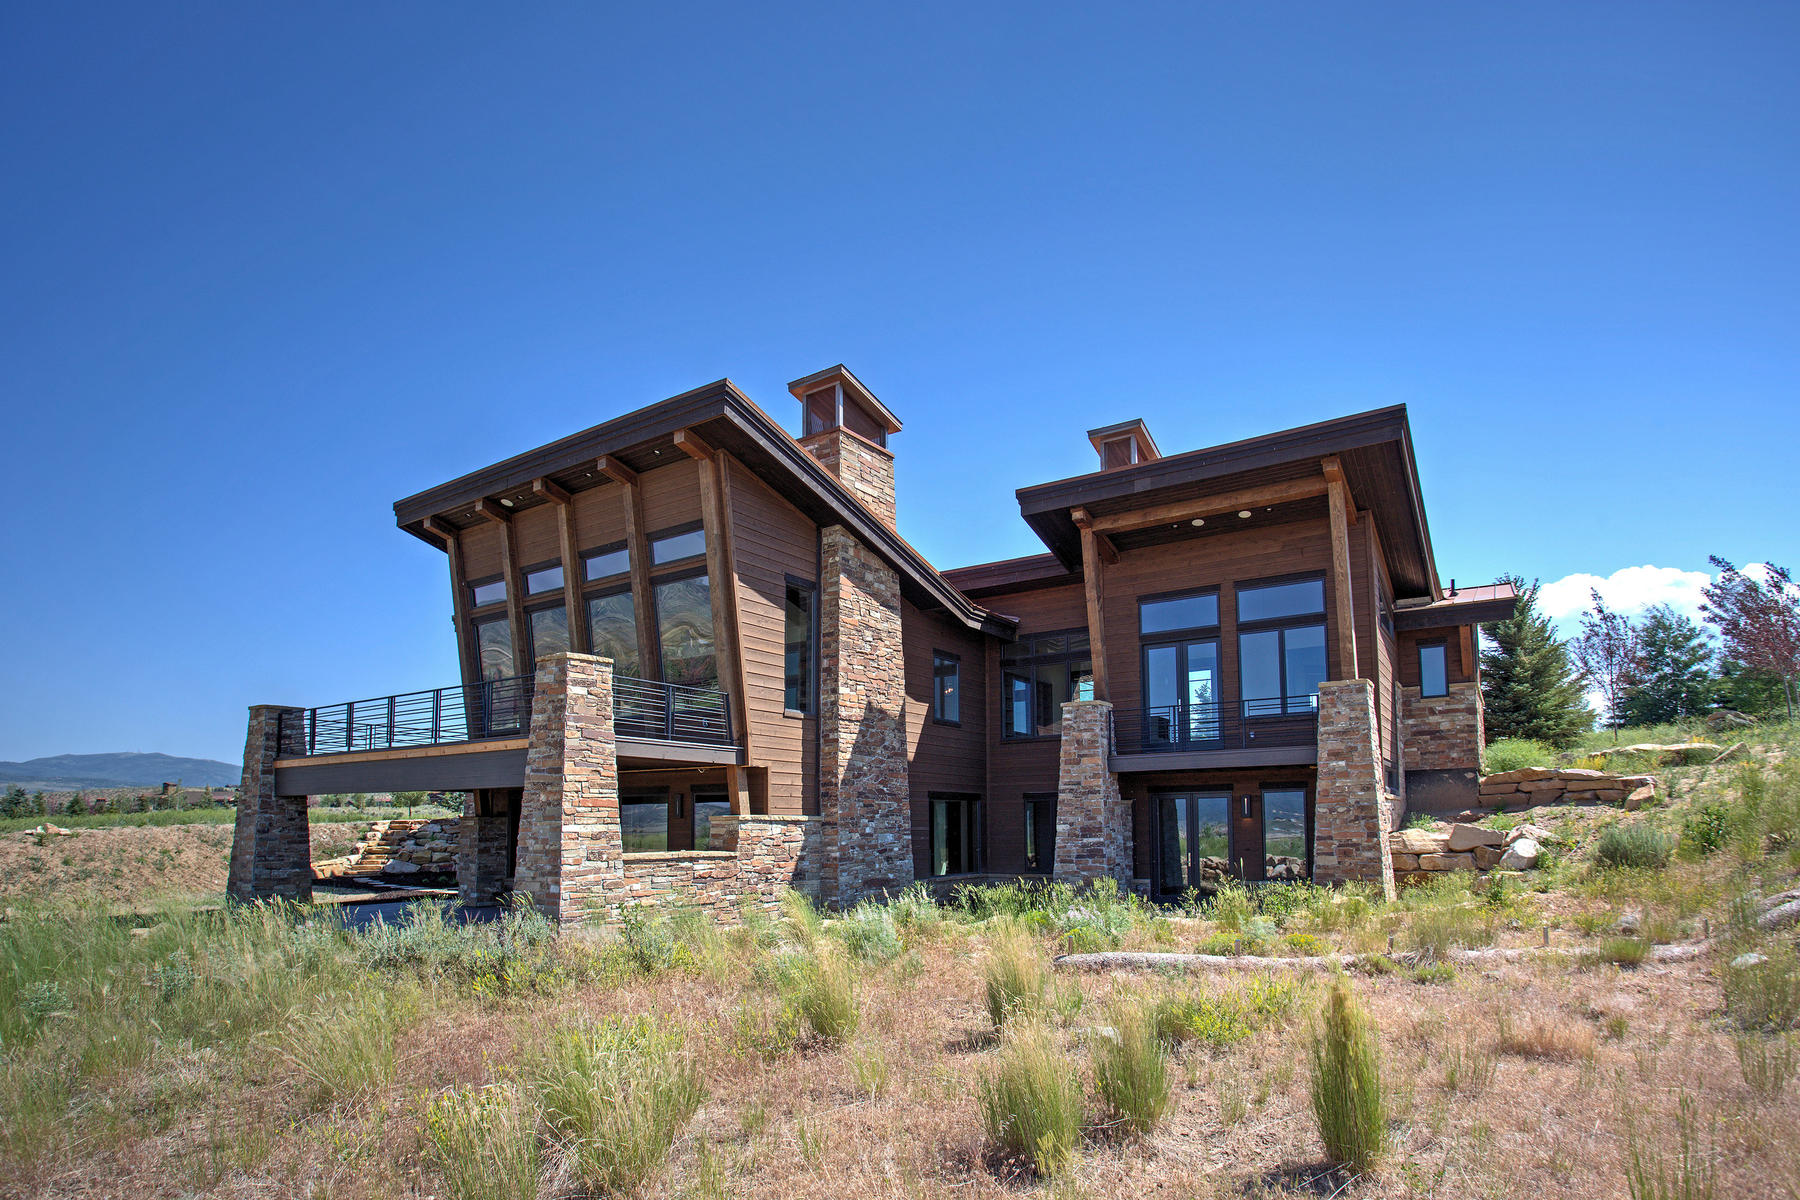 Single Family Home for Sale at New Construction in Promontory with Panoramic Views of Park City's Three Ski Res 6803 Cody Trail Park City, Utah, 84098 United States